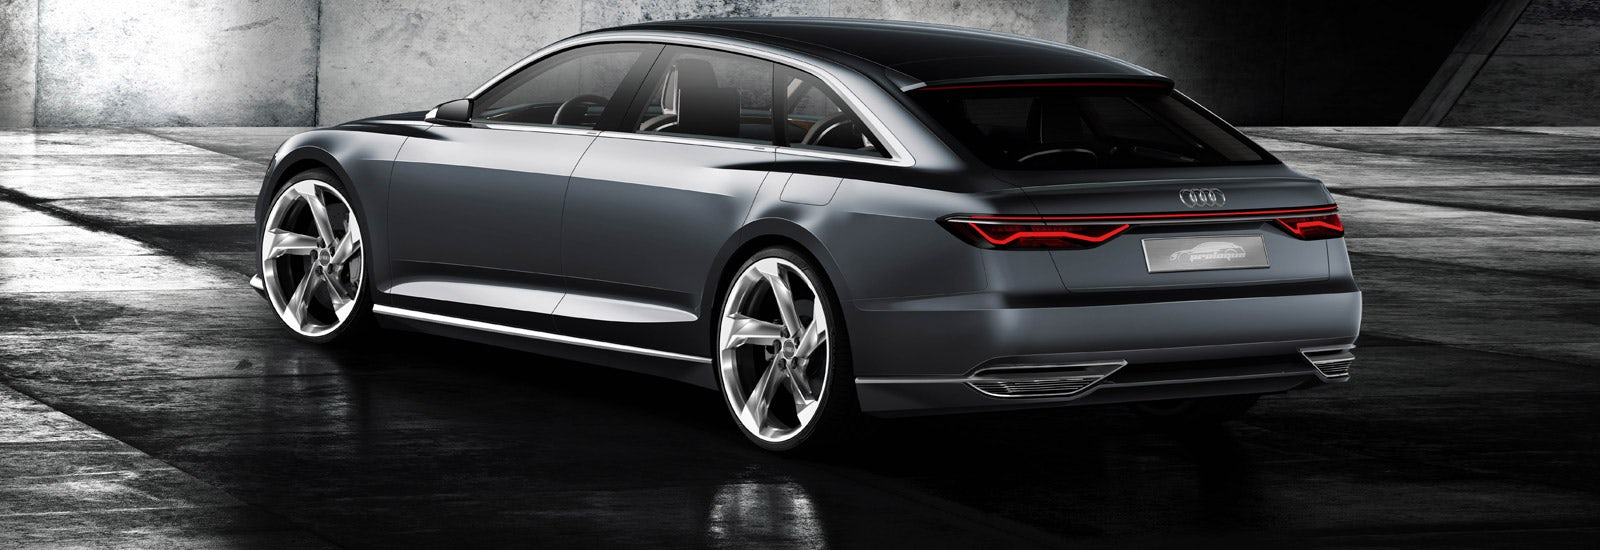 2019 Audi A6 price specs and release date  carwow